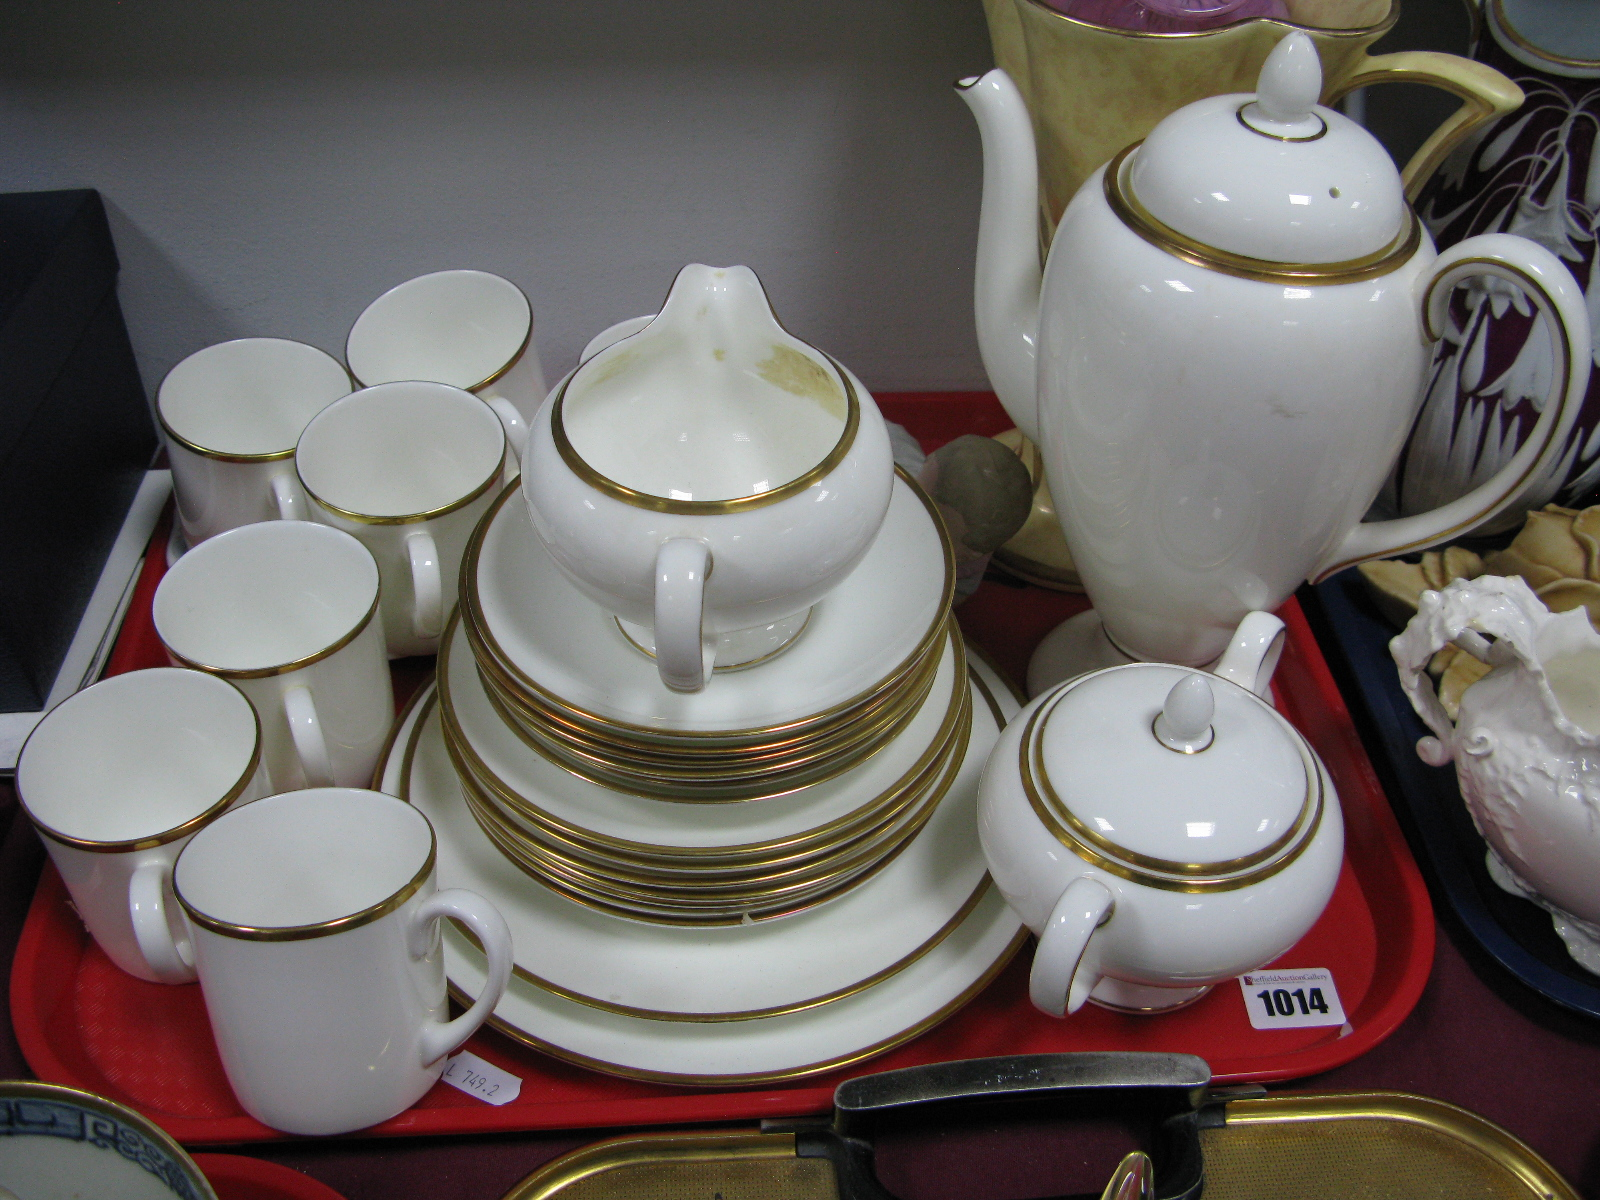 Lot 1014 - A Wedgwood 'California' China Coffee Service, bisque piano baby, Mdina pink mottled vase, Arthur